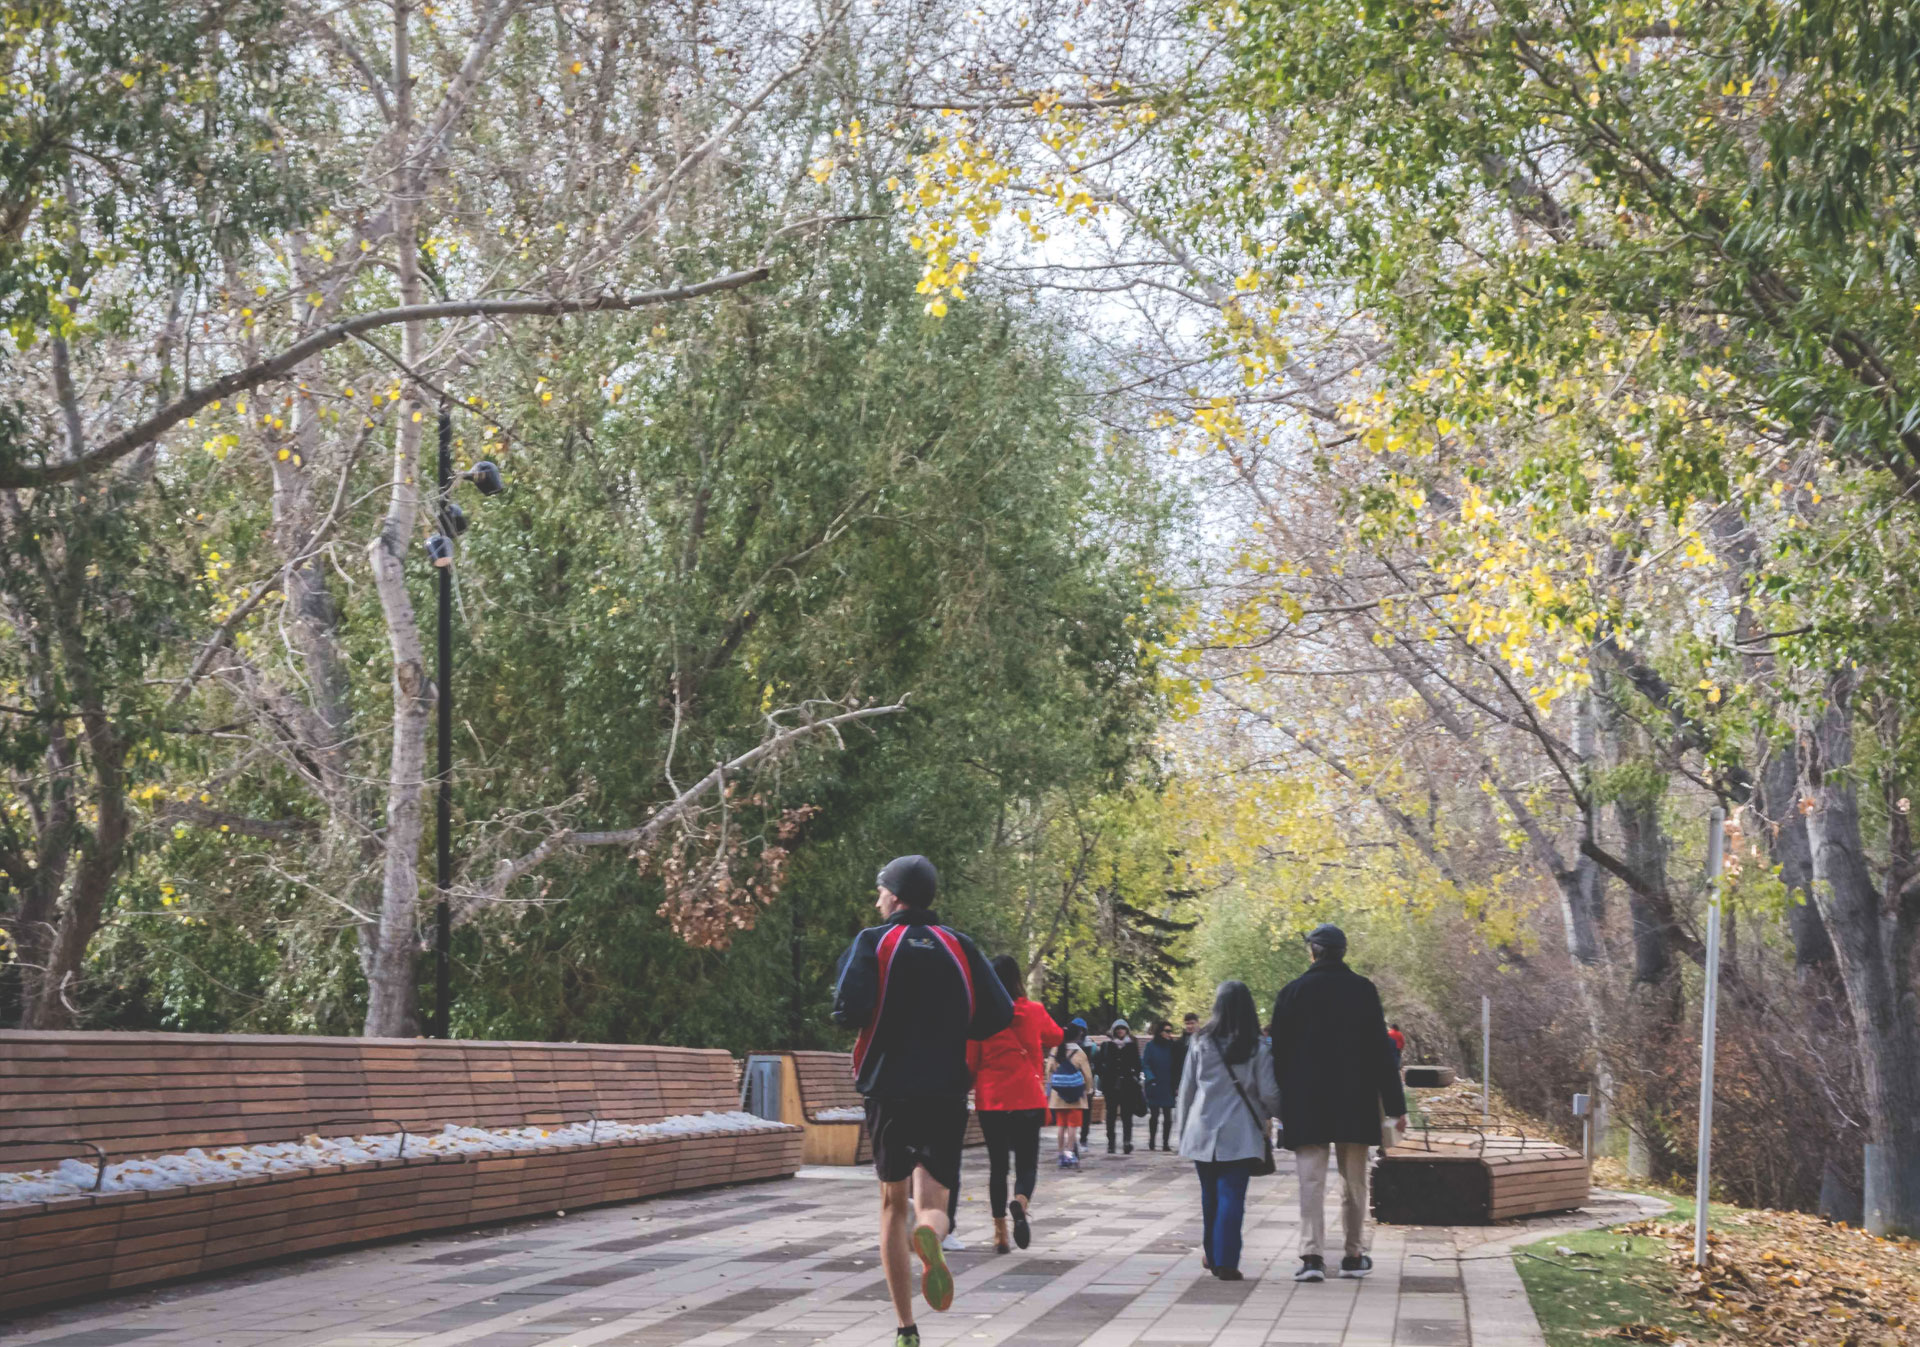 Start your walk along the Bow River Pathway downtown before heading out west to Edworthy Park